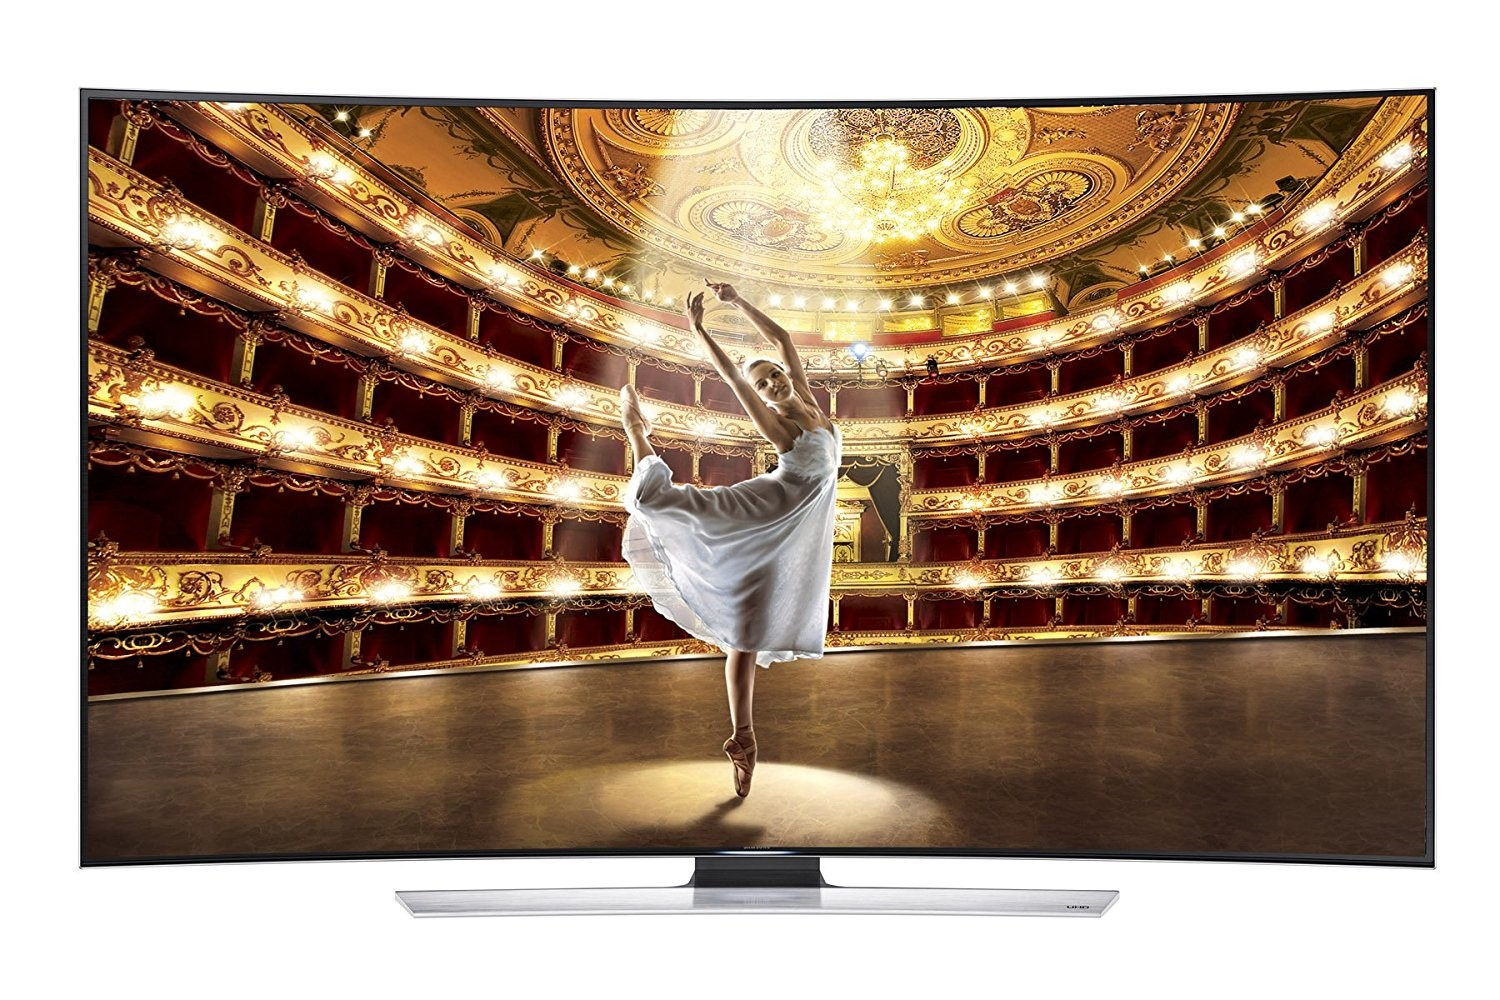 Drivers Samsung UN55HU8700F LED TV